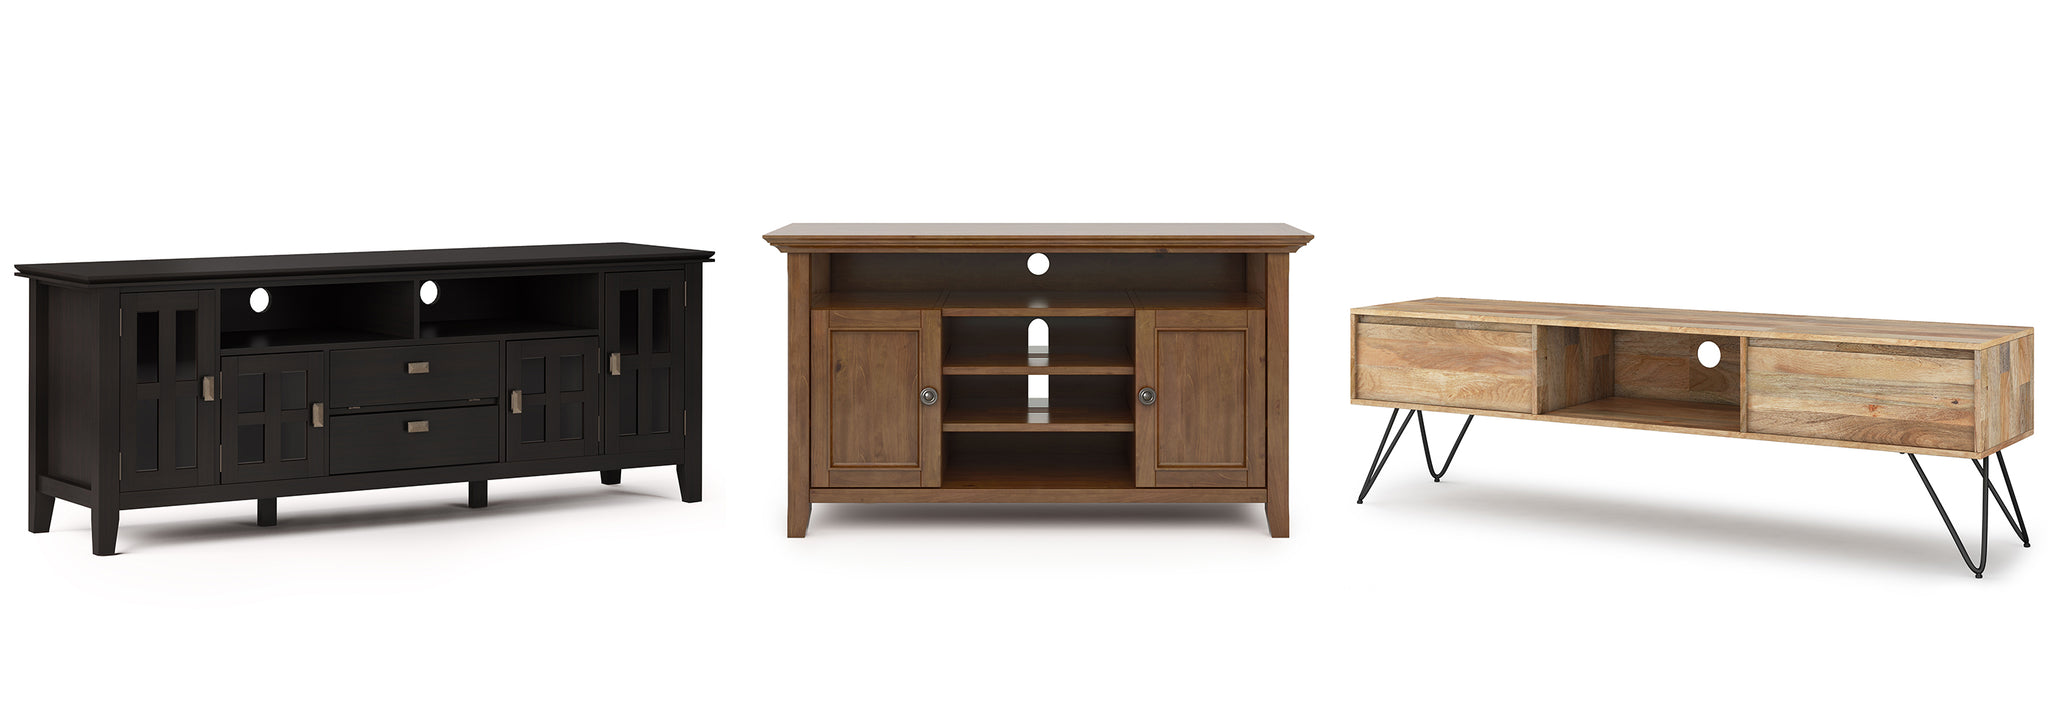 TV Media Stands-Fathers Day Collection